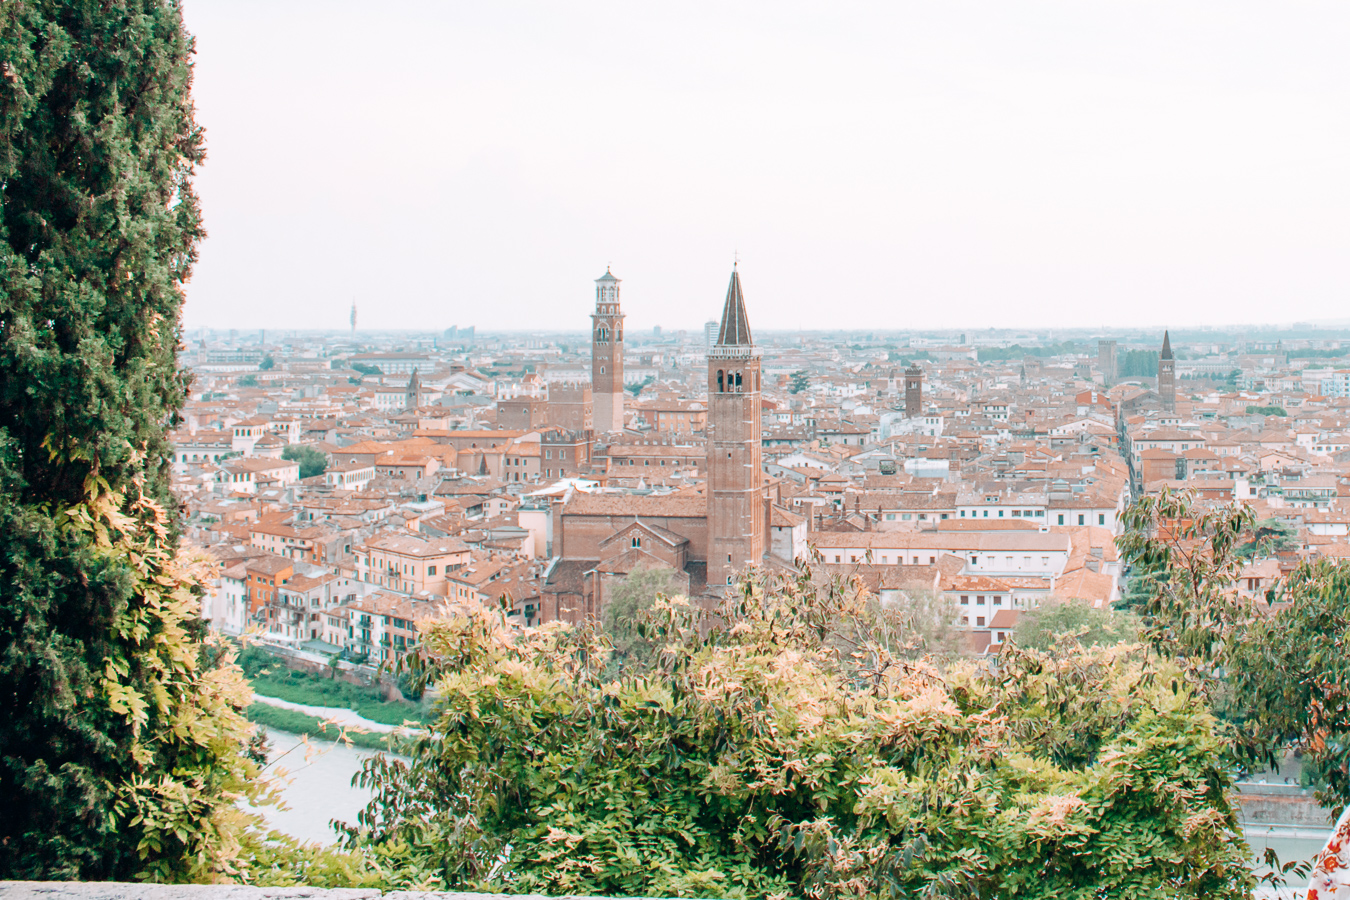 View of Verona from the Castel San Pietro